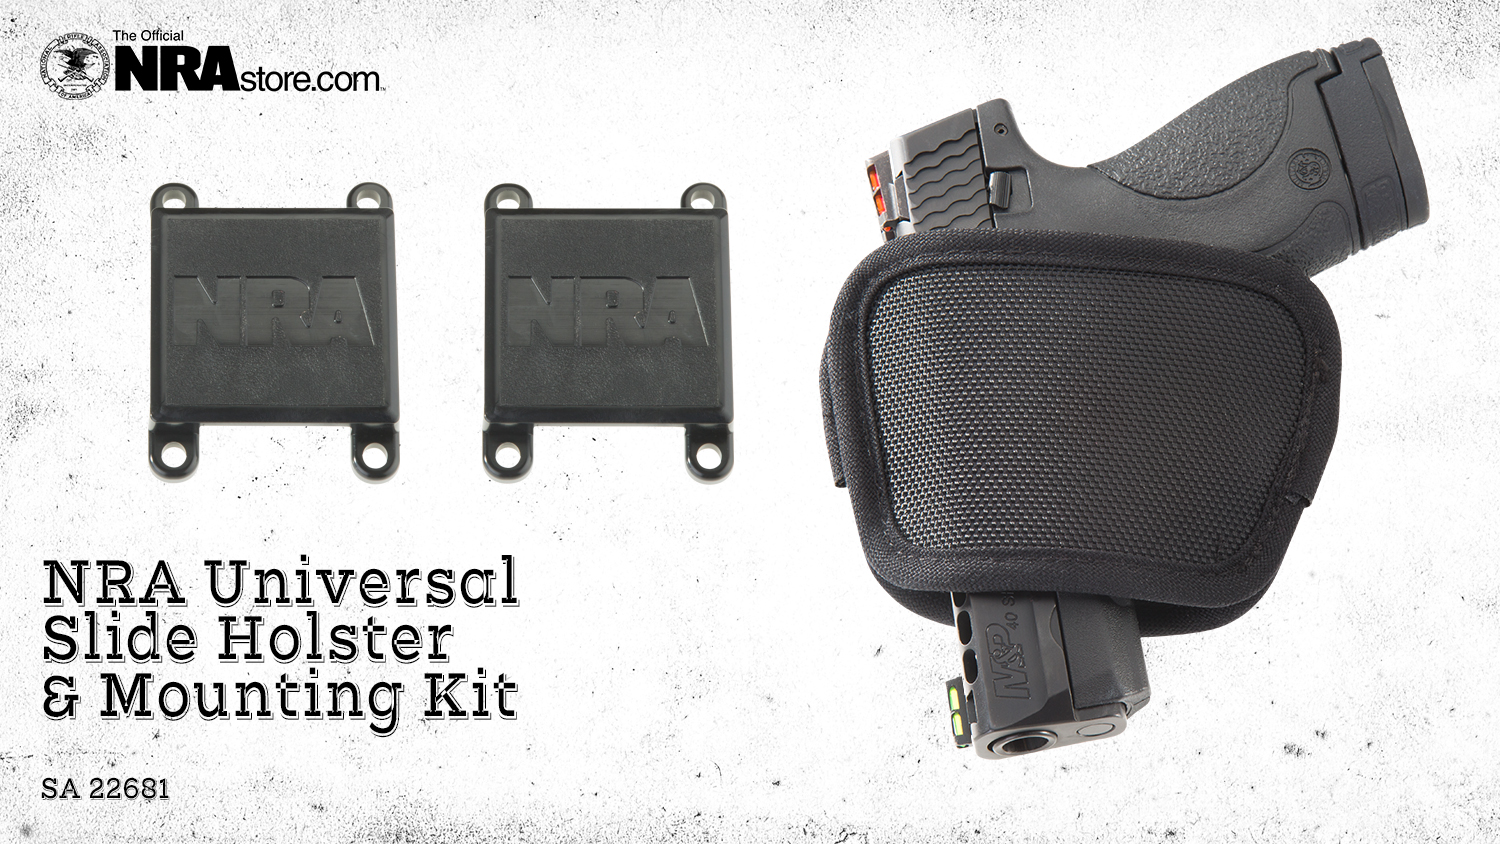 NRA Store Product Highlight: Universal Slide Holster & Mounting Kit